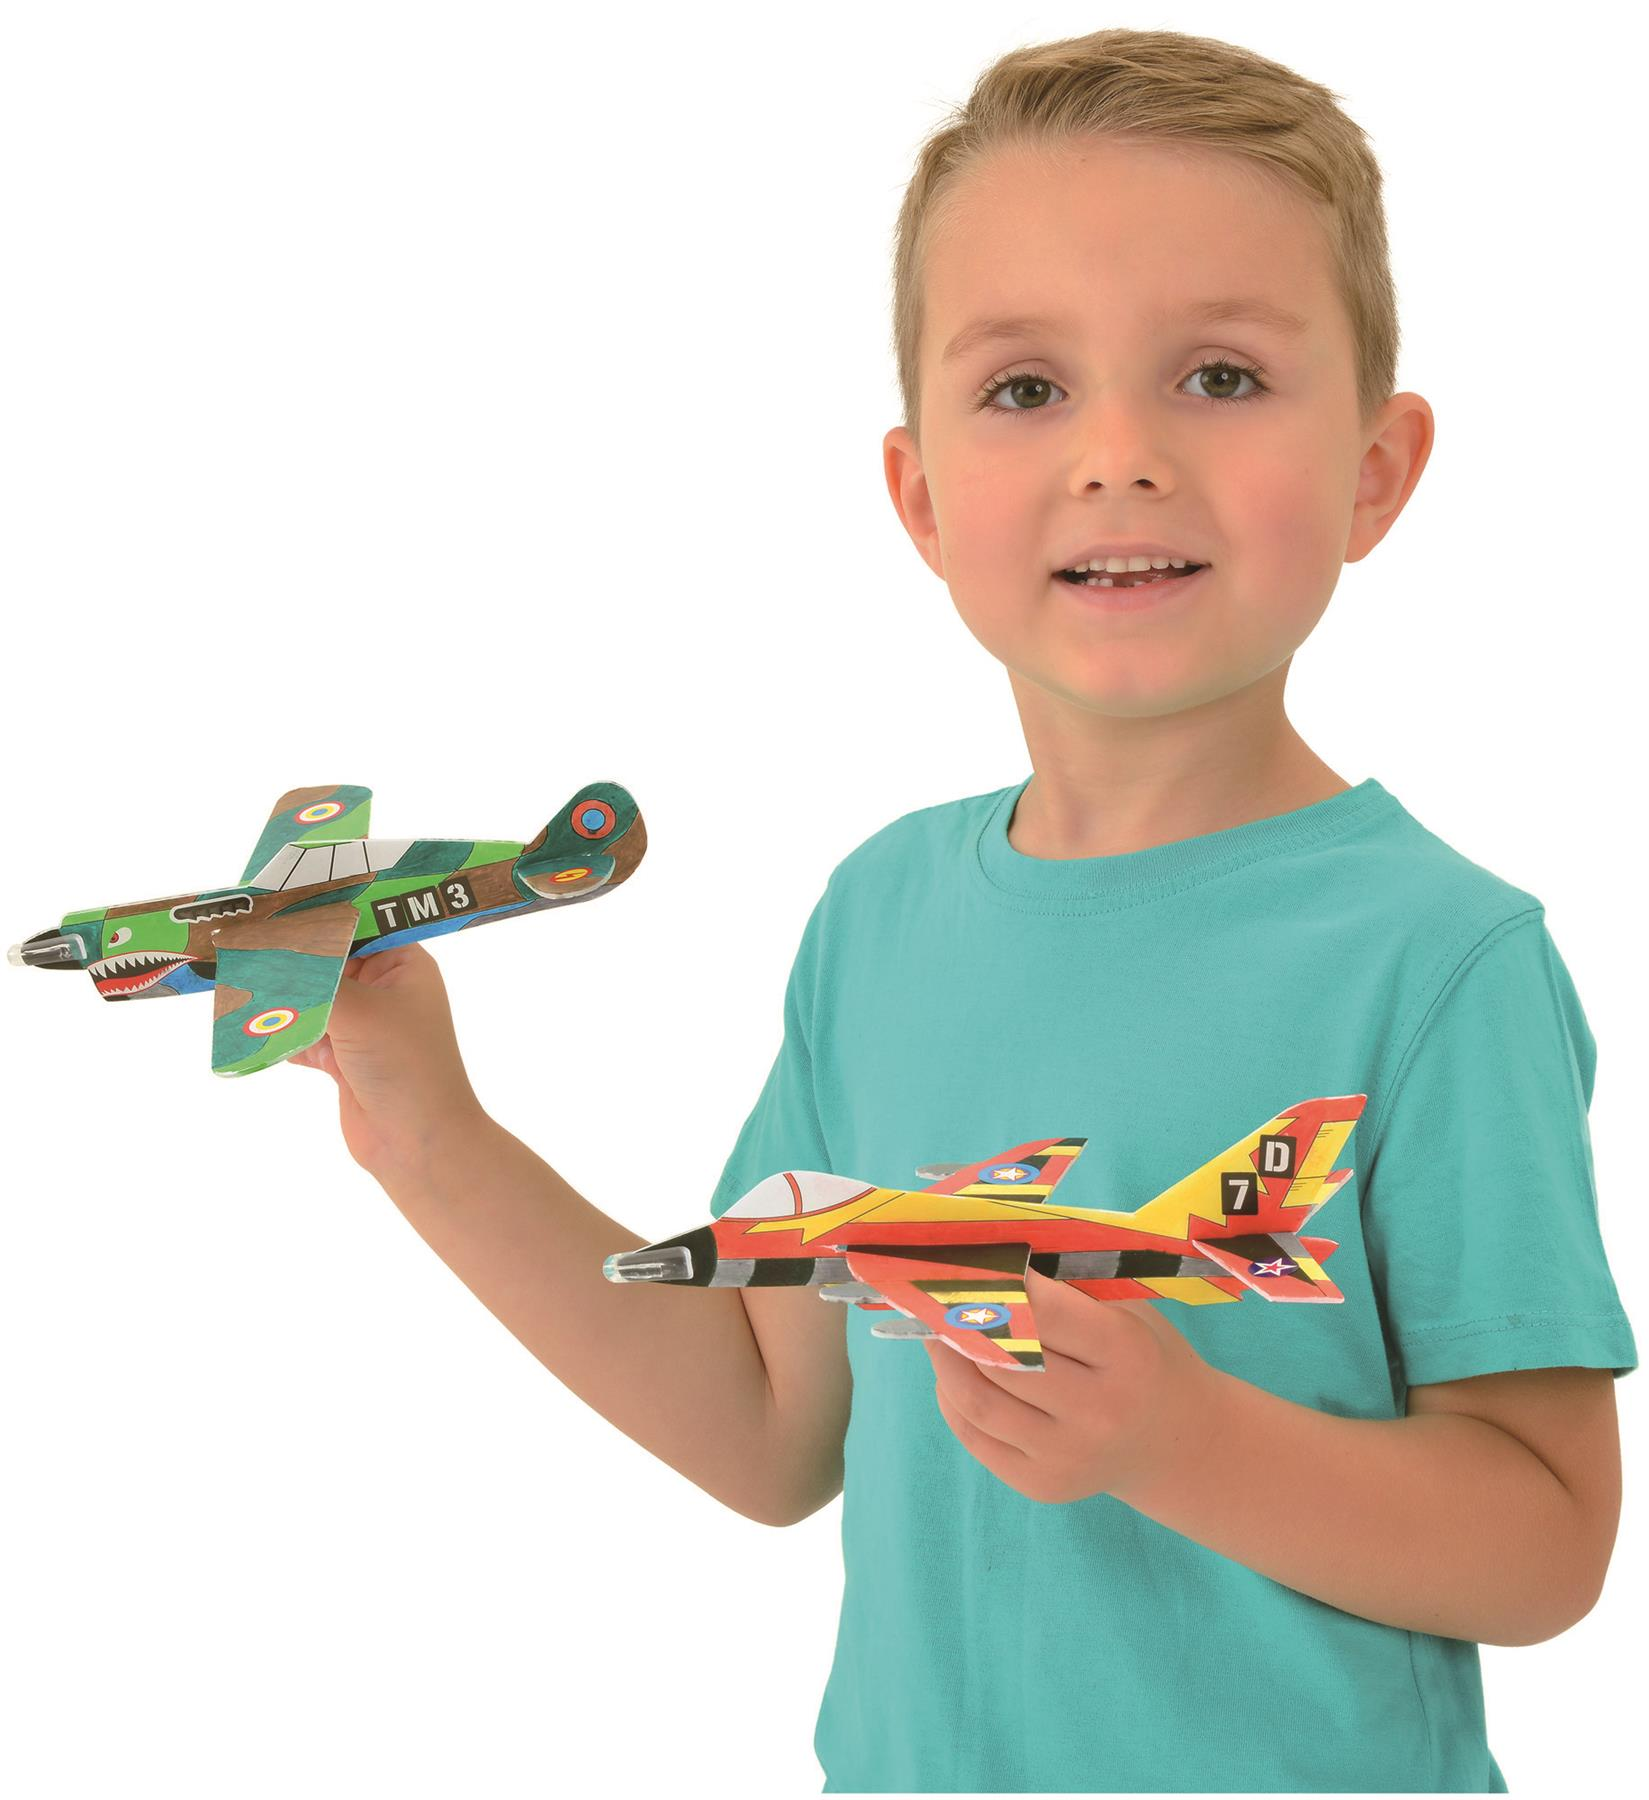 Galt PAPER PLANES Kids Art Craft Toy BN